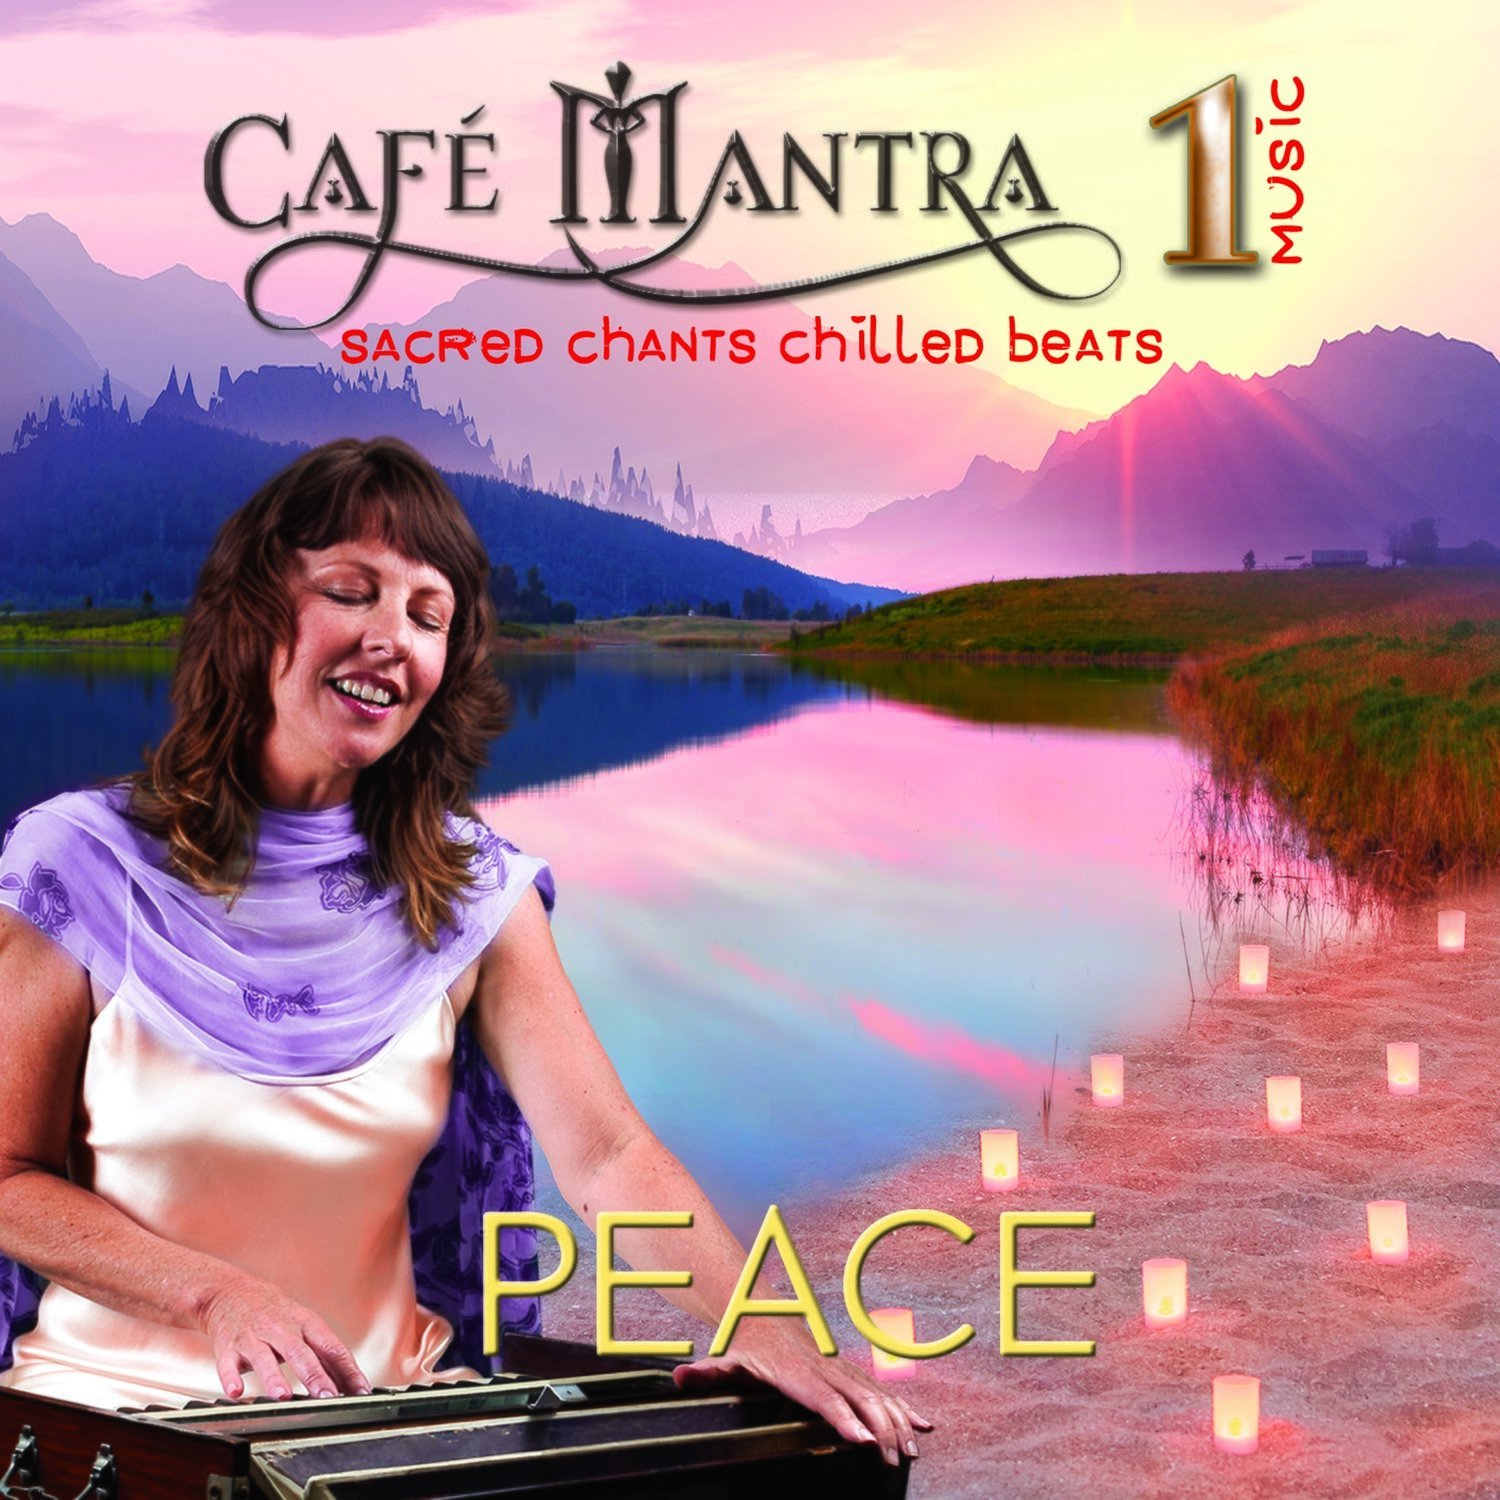 CD Cafe Mantra Music1 Peace